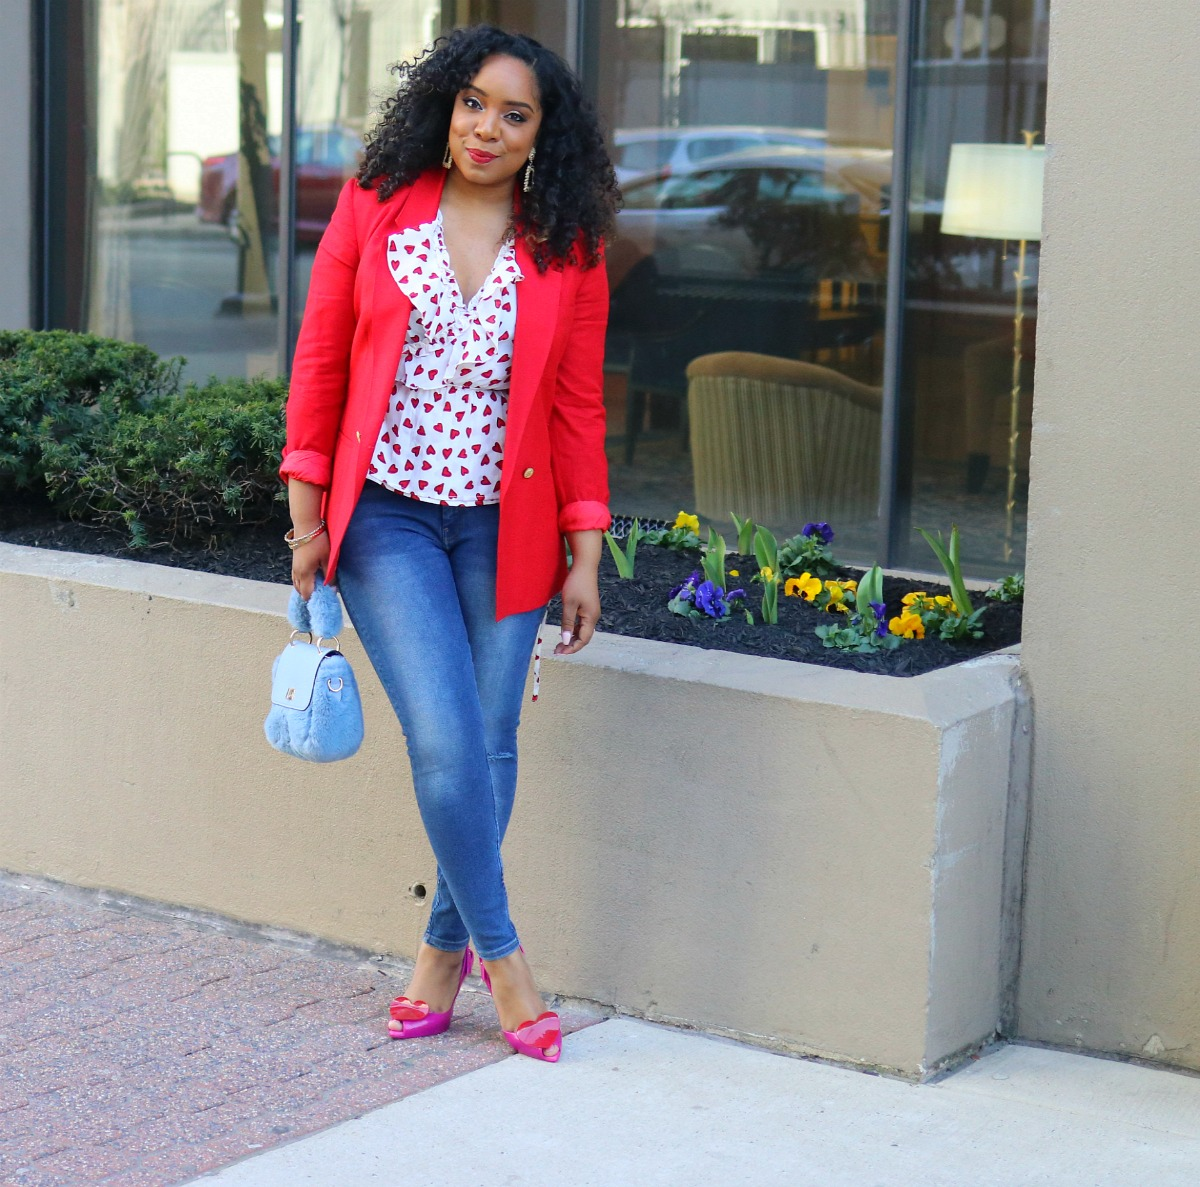 Style & Poise: Heart Blouse, Red Blazer, Heart Shoes